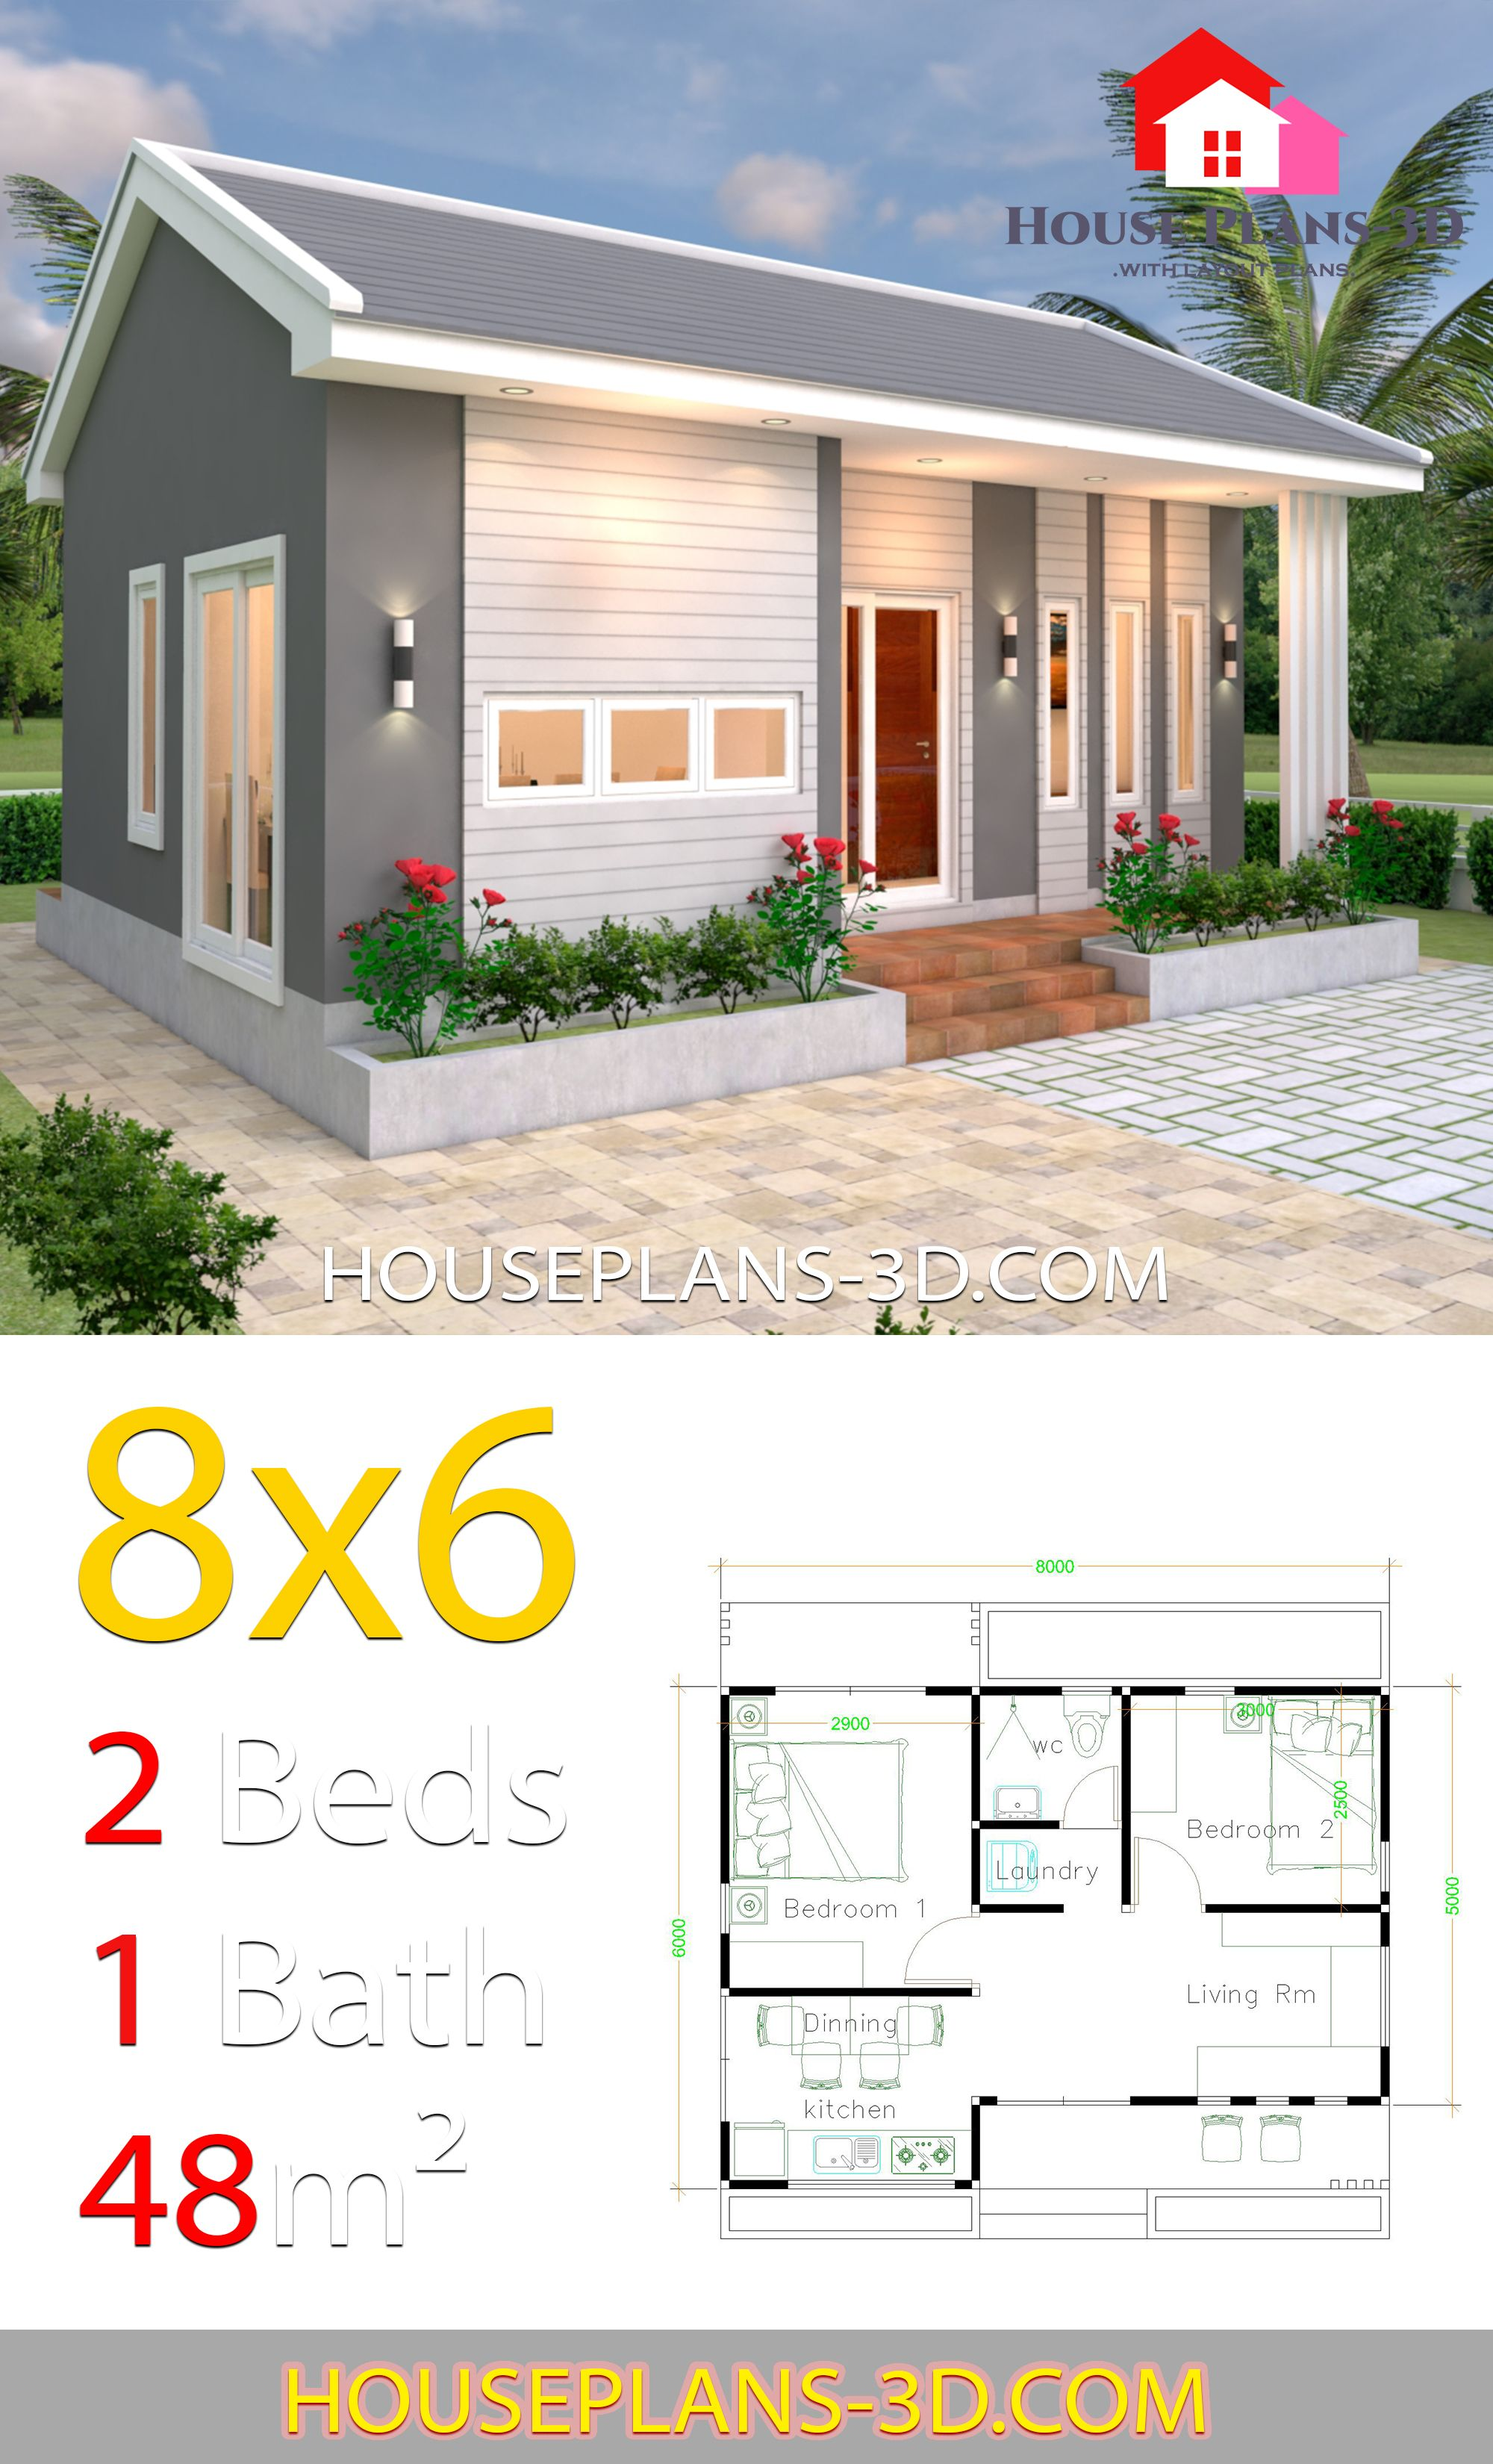 House Design Plans 8x6 With 2 Bedrooms House Plans 3d Bedroom House Plans Guest House Plans Home Design Plans